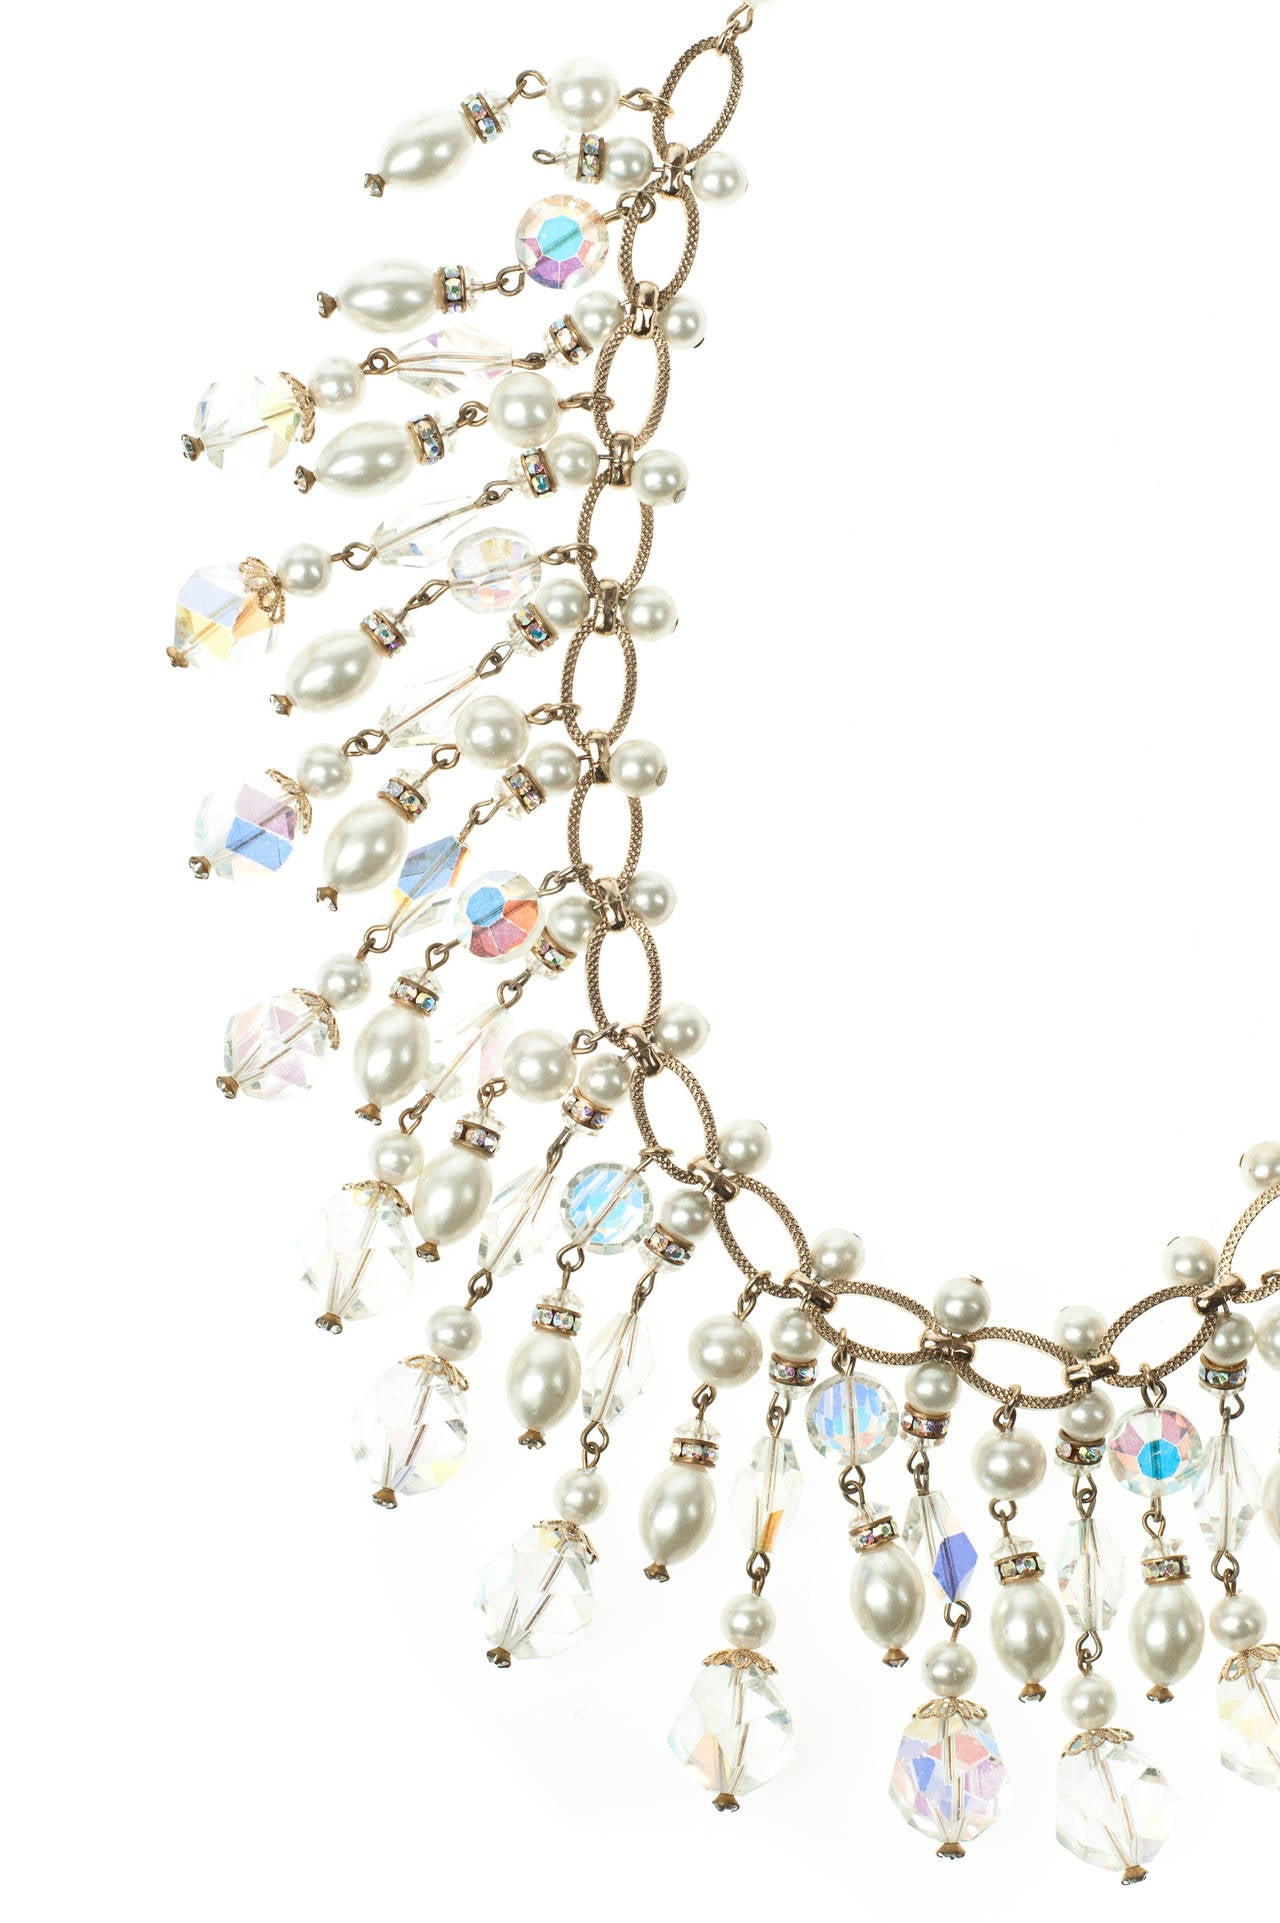 Vintage Vendome Crystal & Pearl Bib Necklace In Excellent Condition For Sale In London, GB